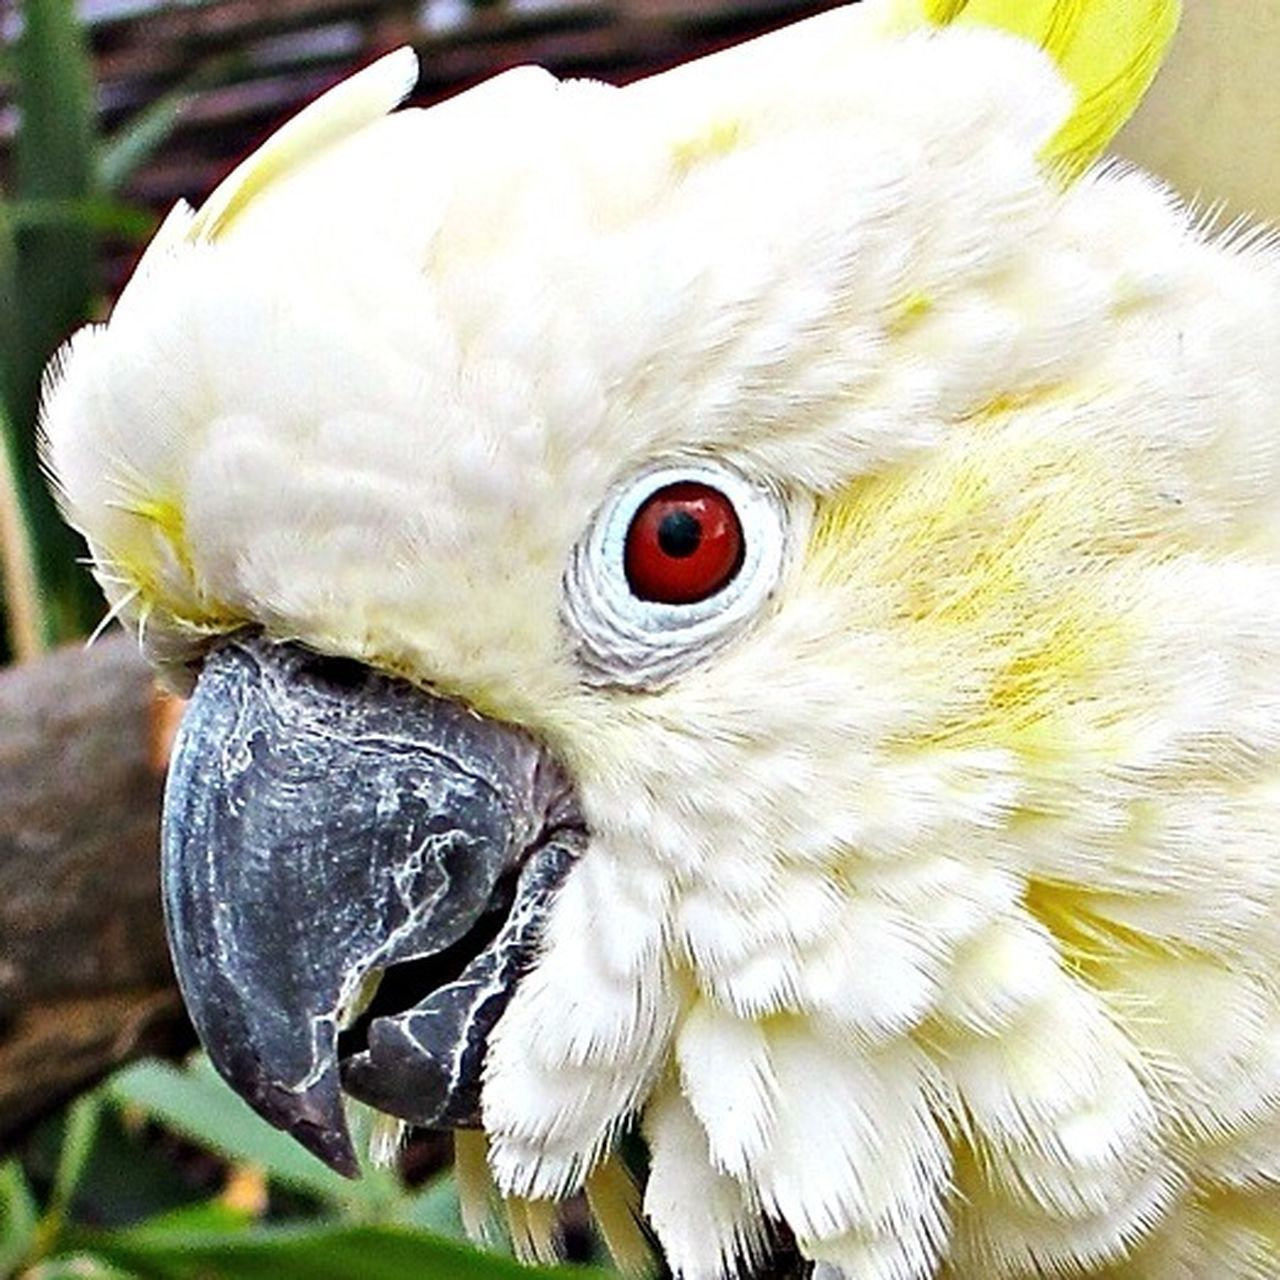 bird, close-up, beak, parrot, one animal, outdoors, portrait, cockatoo, day, no people, nature, animal themes, macaw